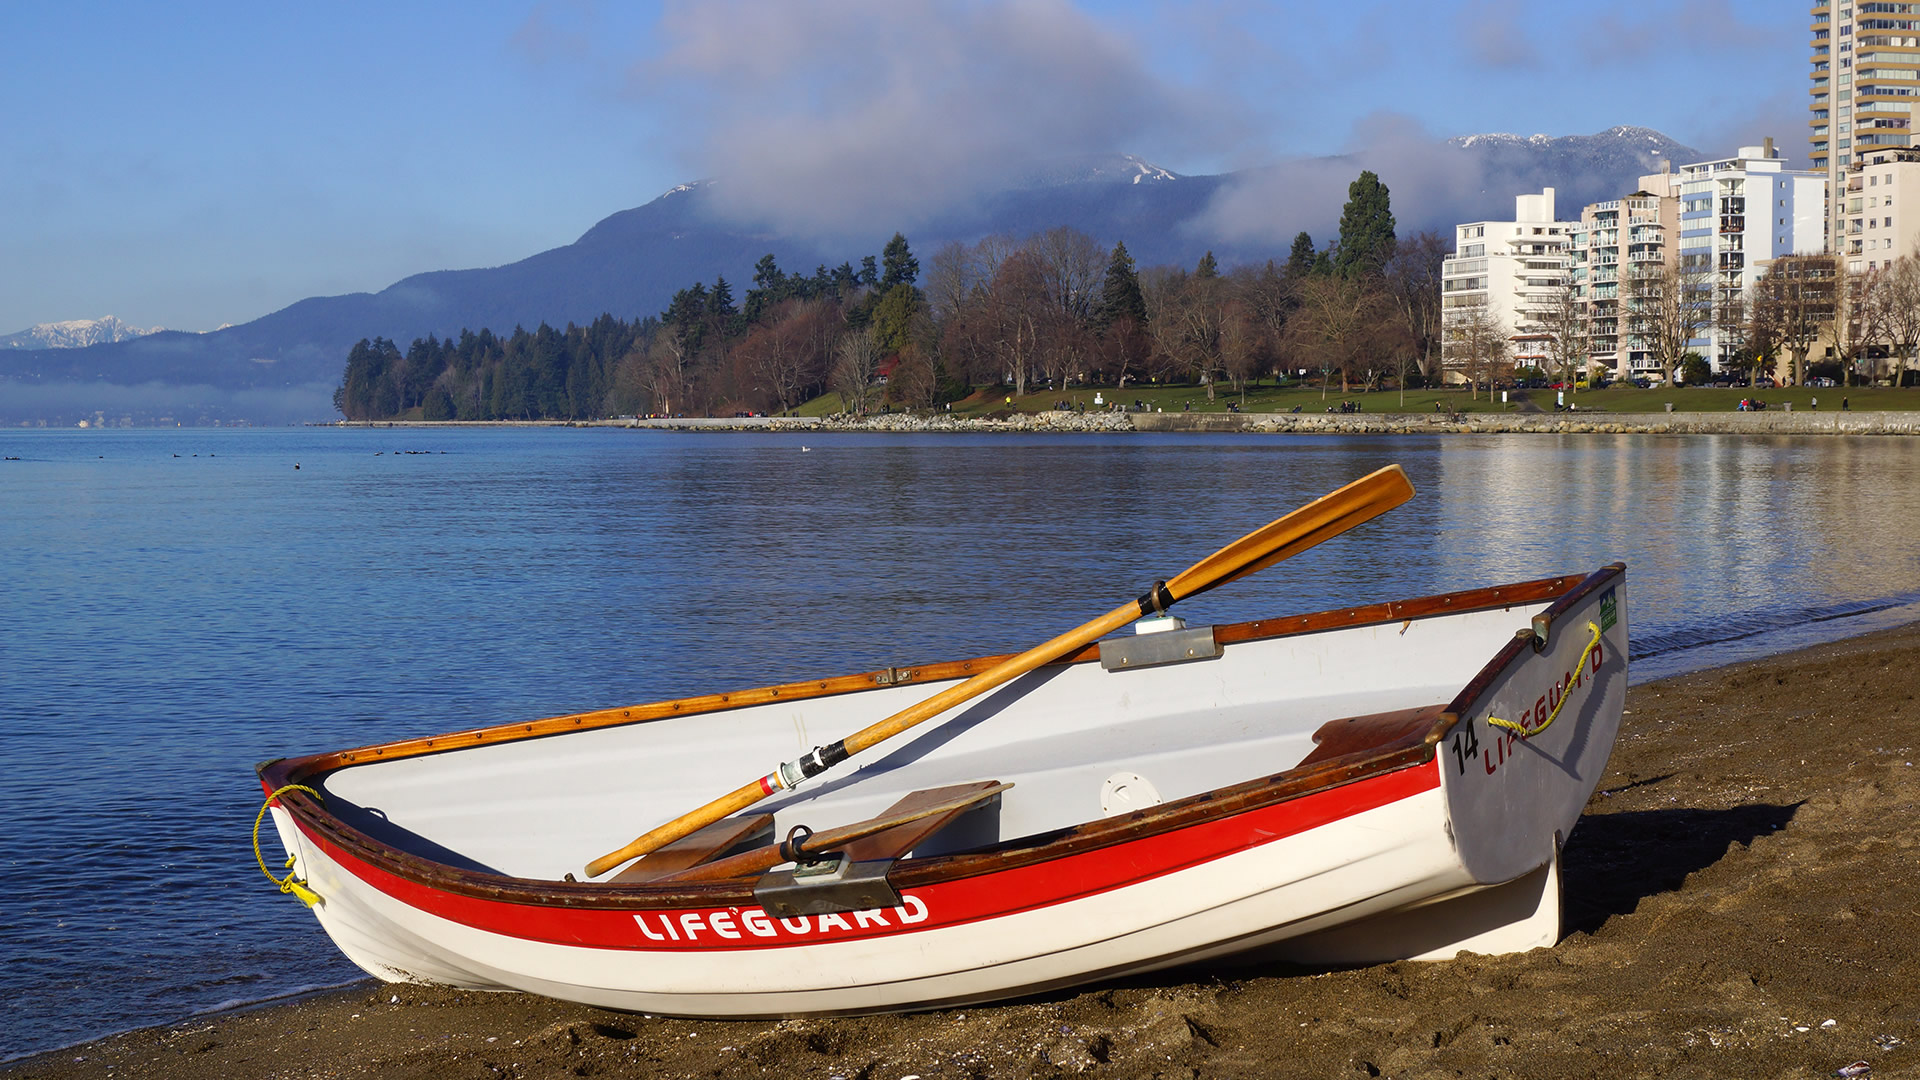 Westcoast-Lifeguard-Rowboat-credit-City-of-Vancouver-Whitehall-Rowing-and-Sail-6a